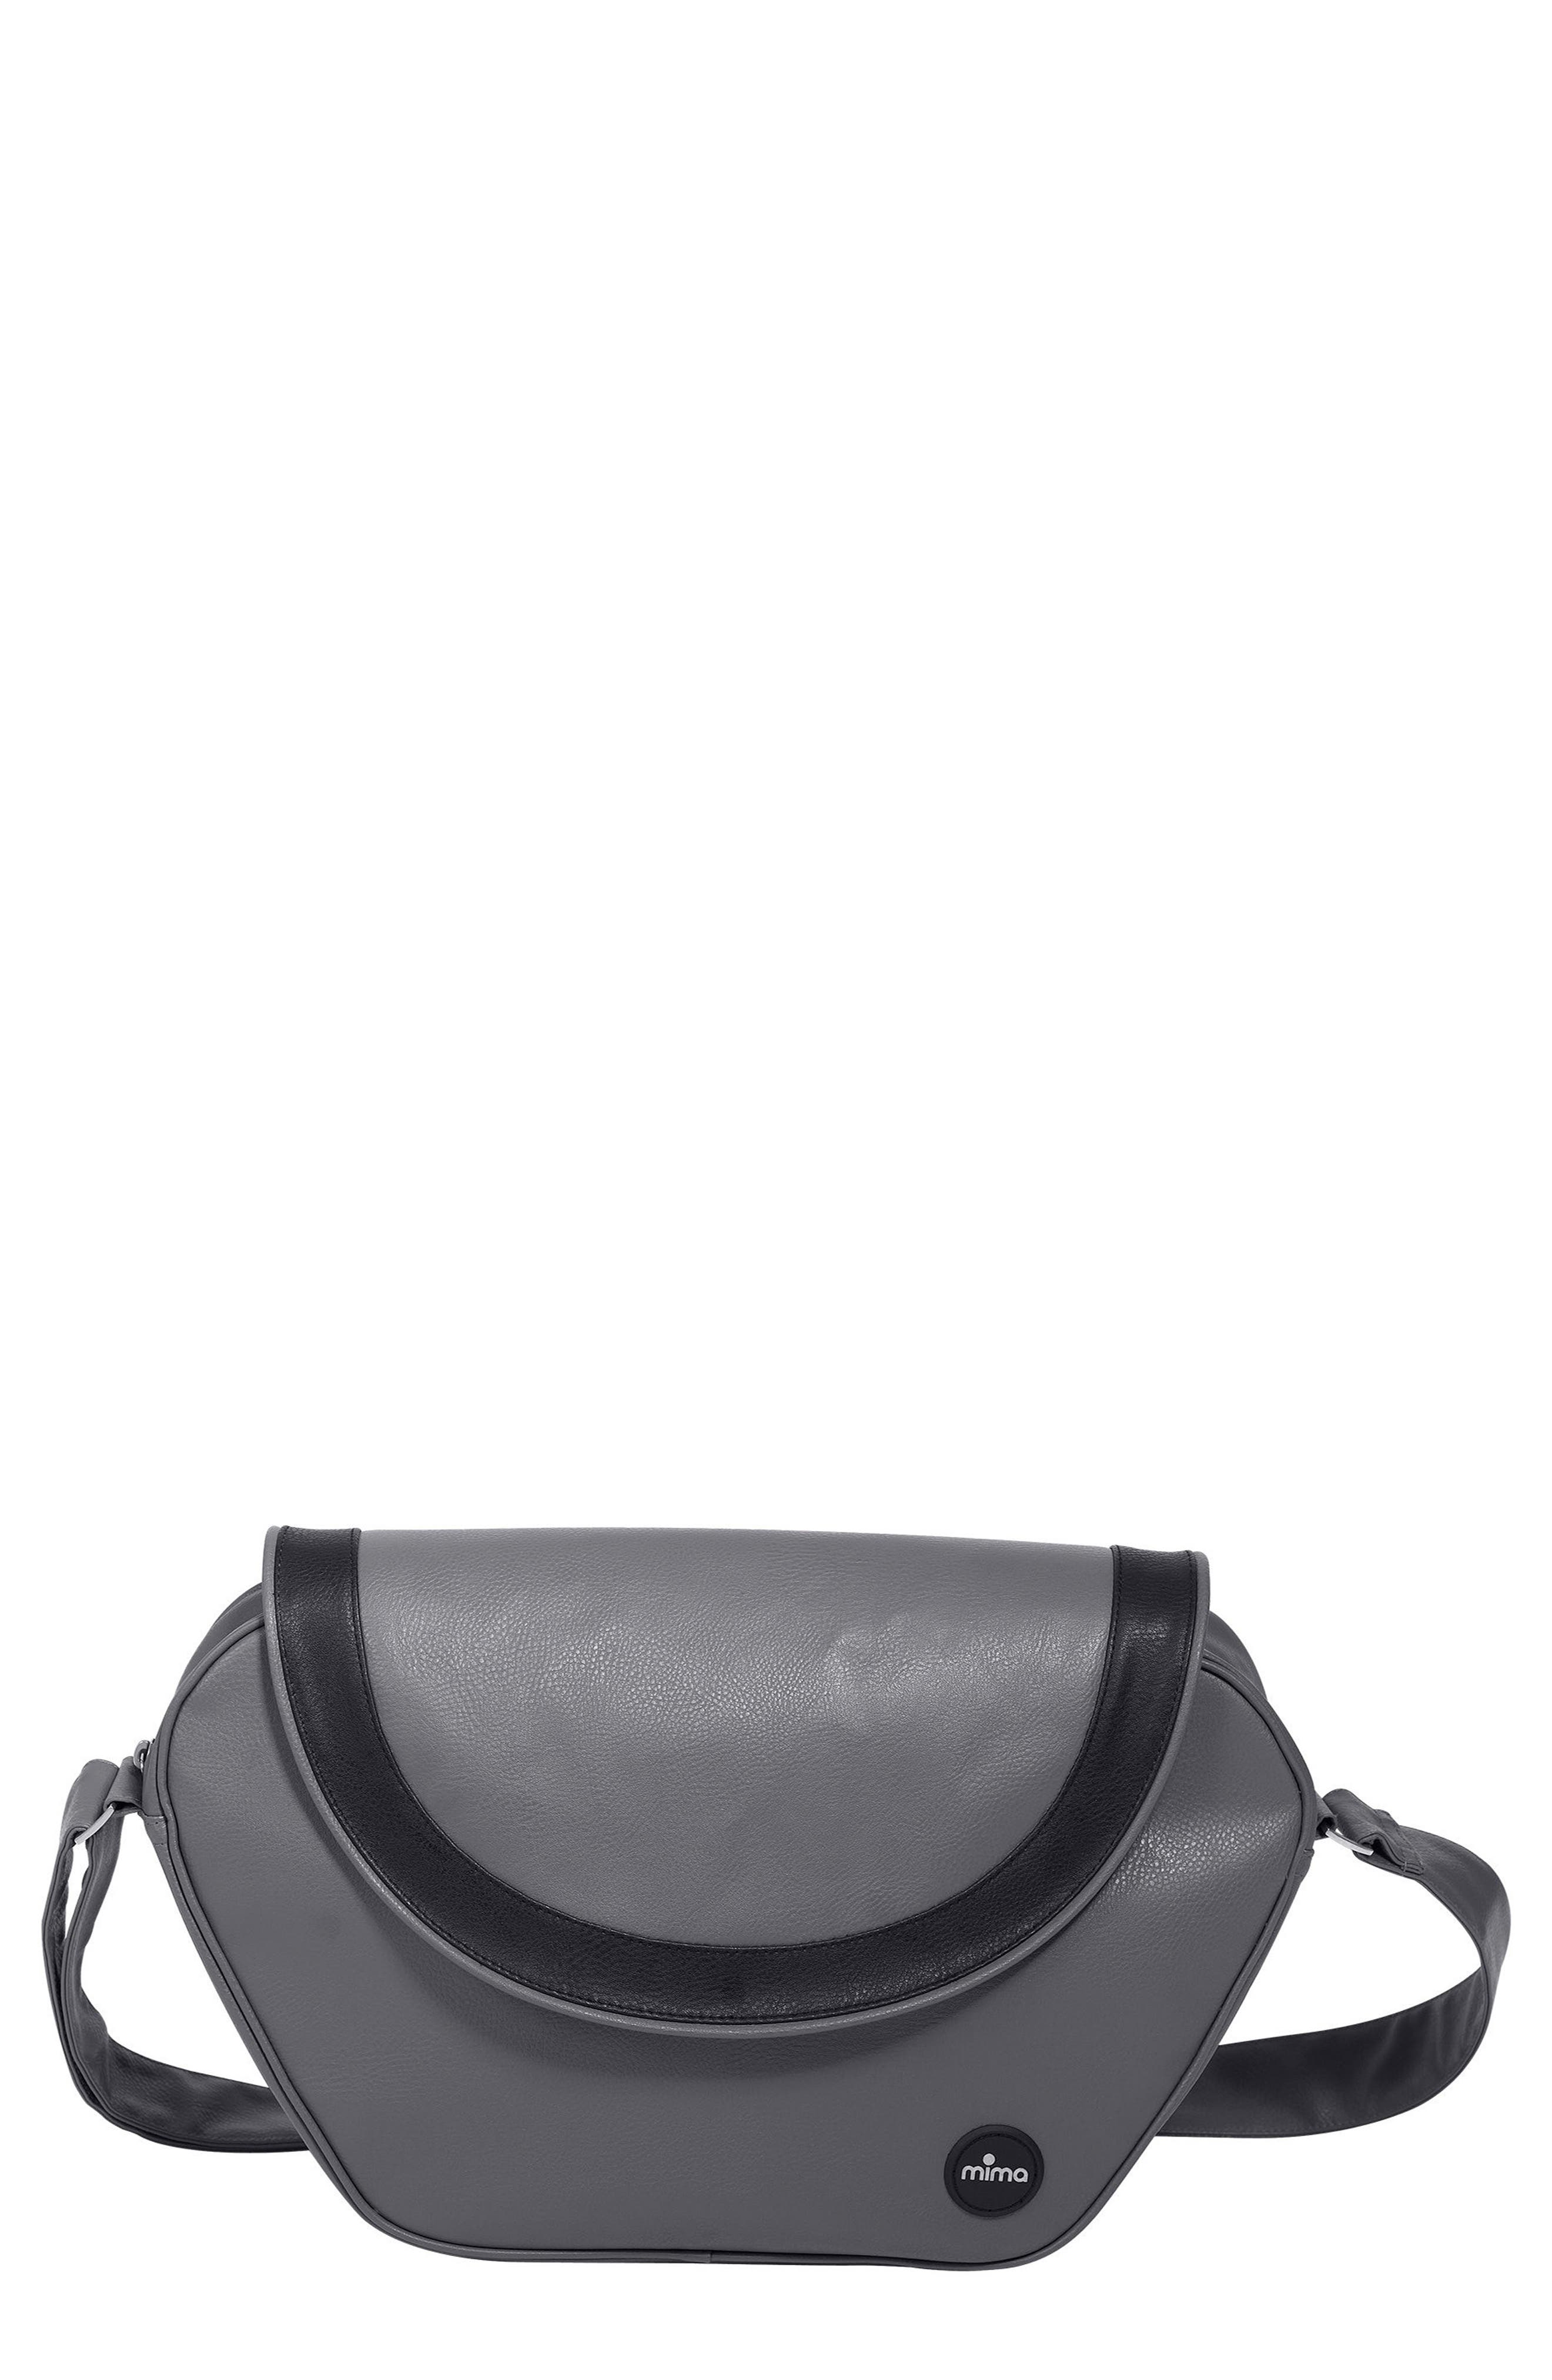 Mima Trendy Faux Leather Diaper Bag